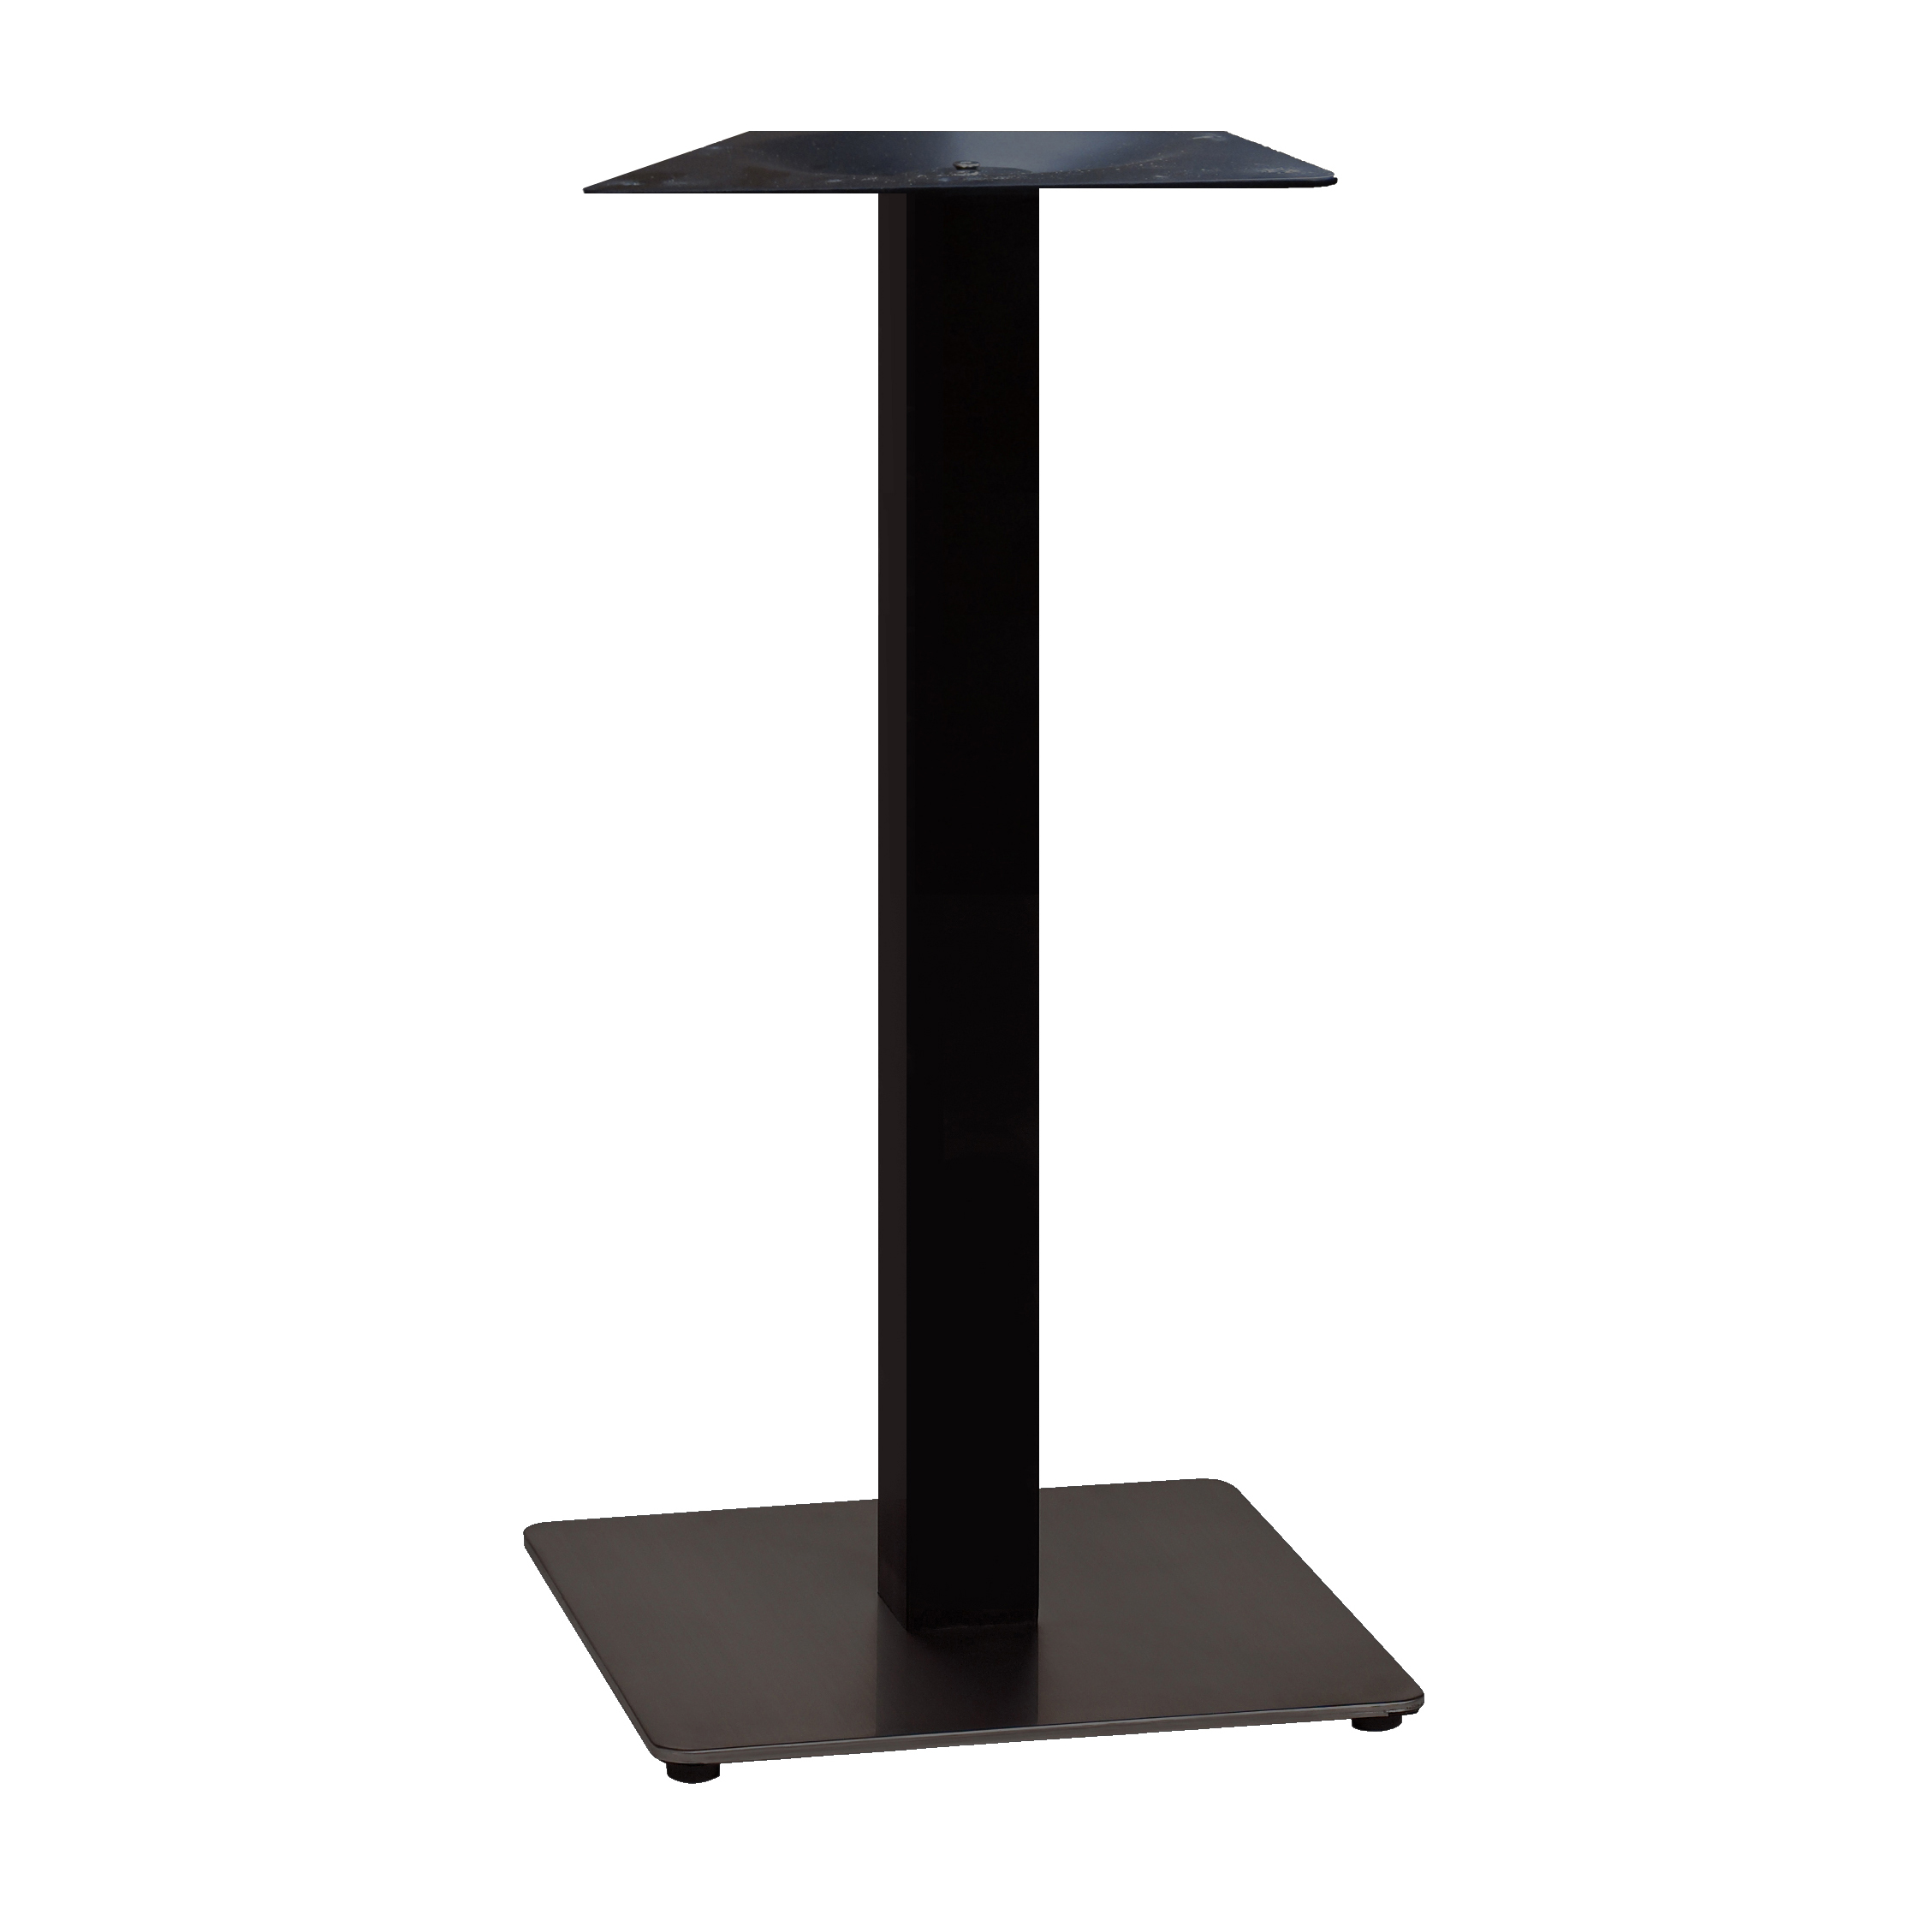 Grosfillex US507017 table base, metal